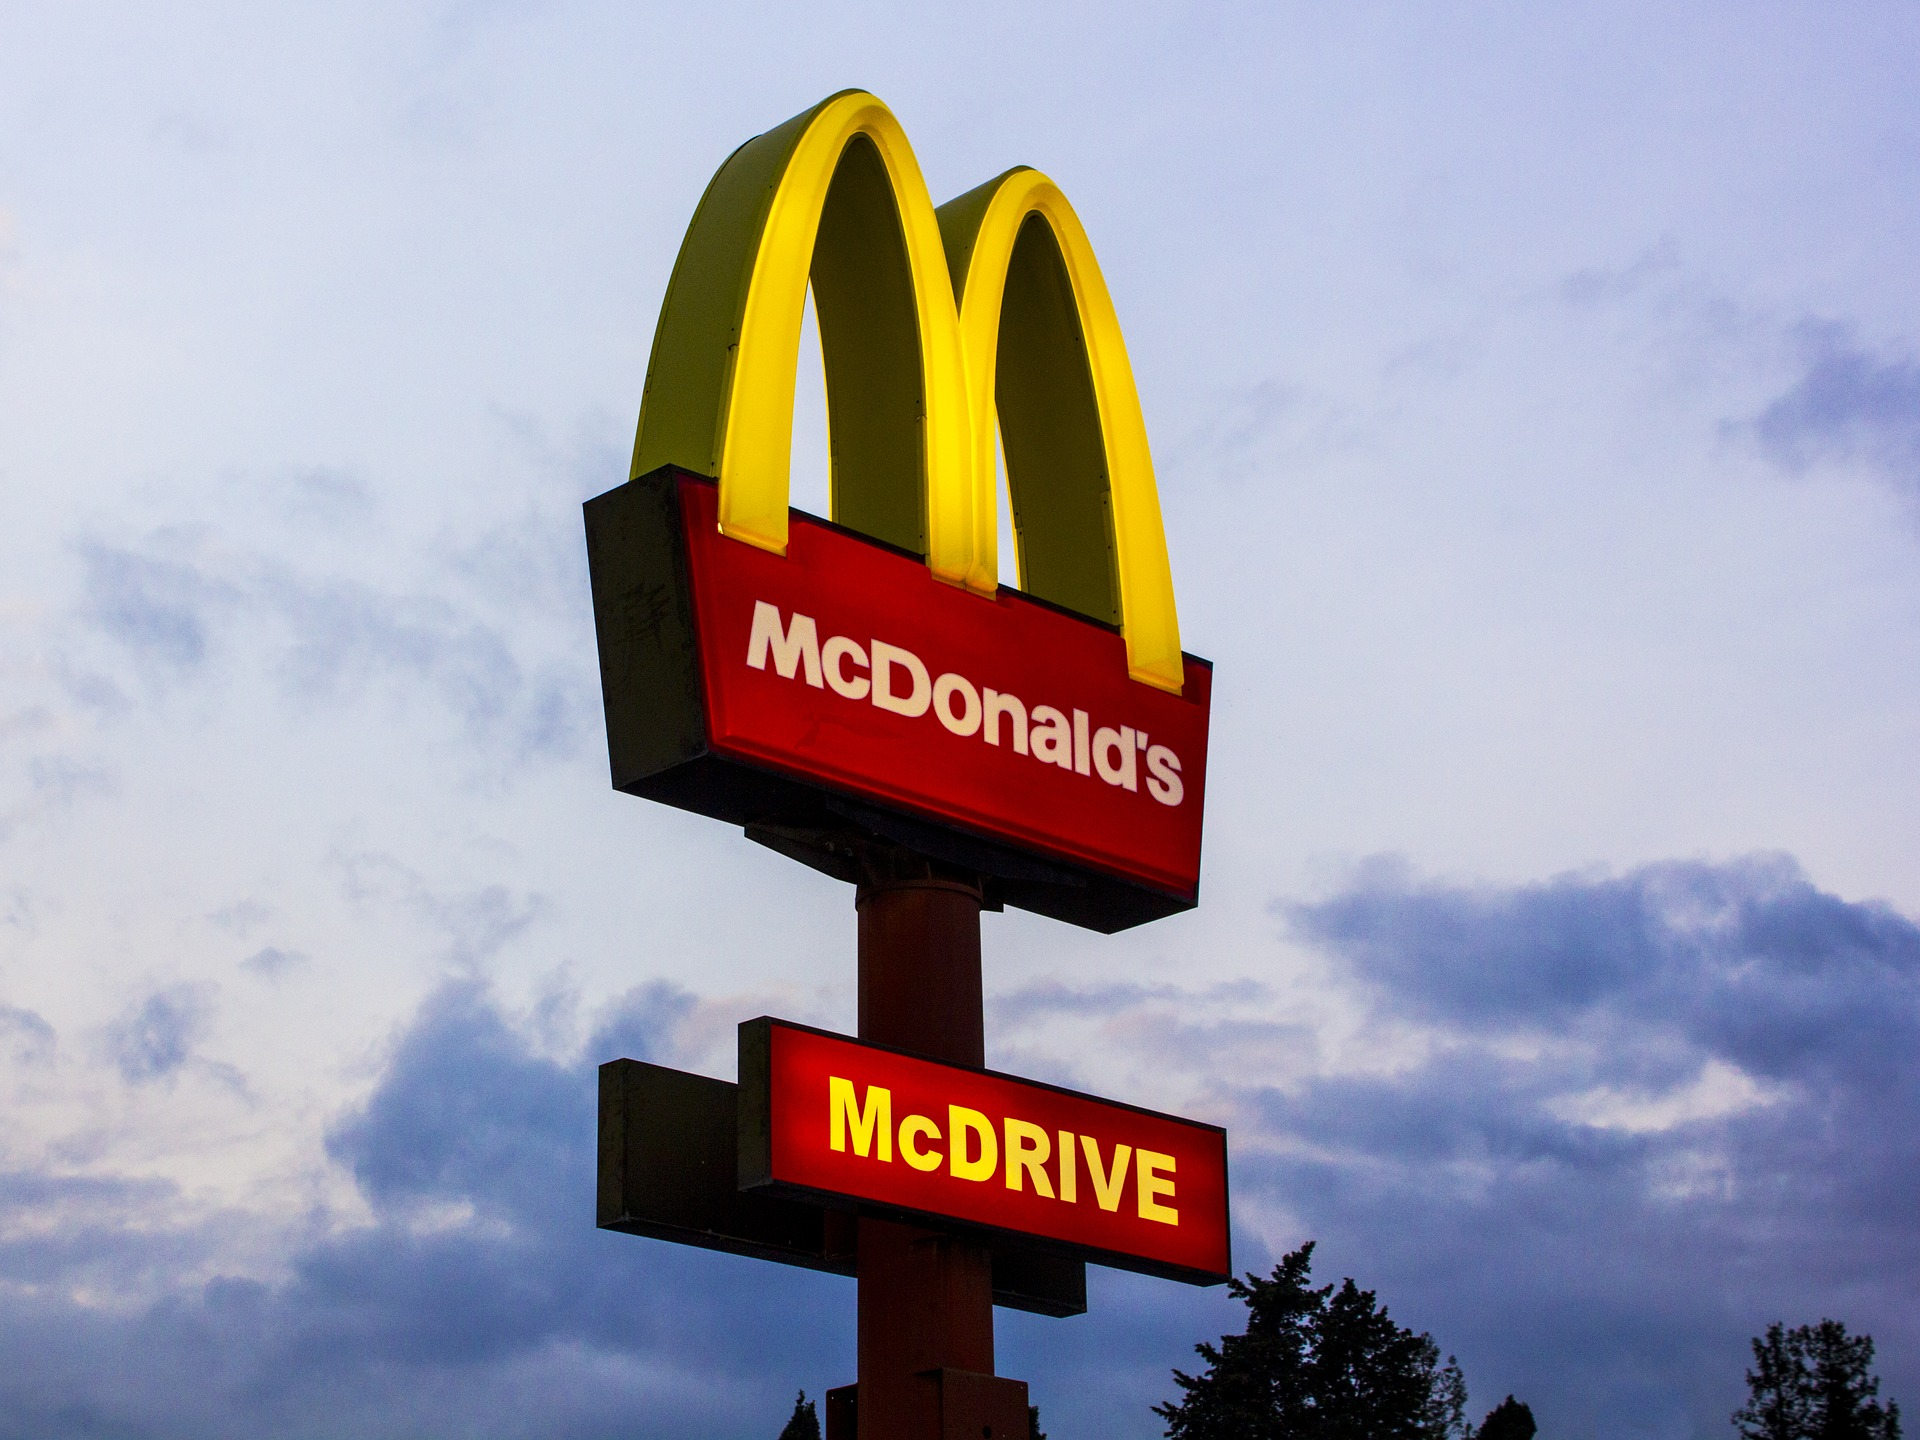 MCDONALDS MCD stock news and analysis